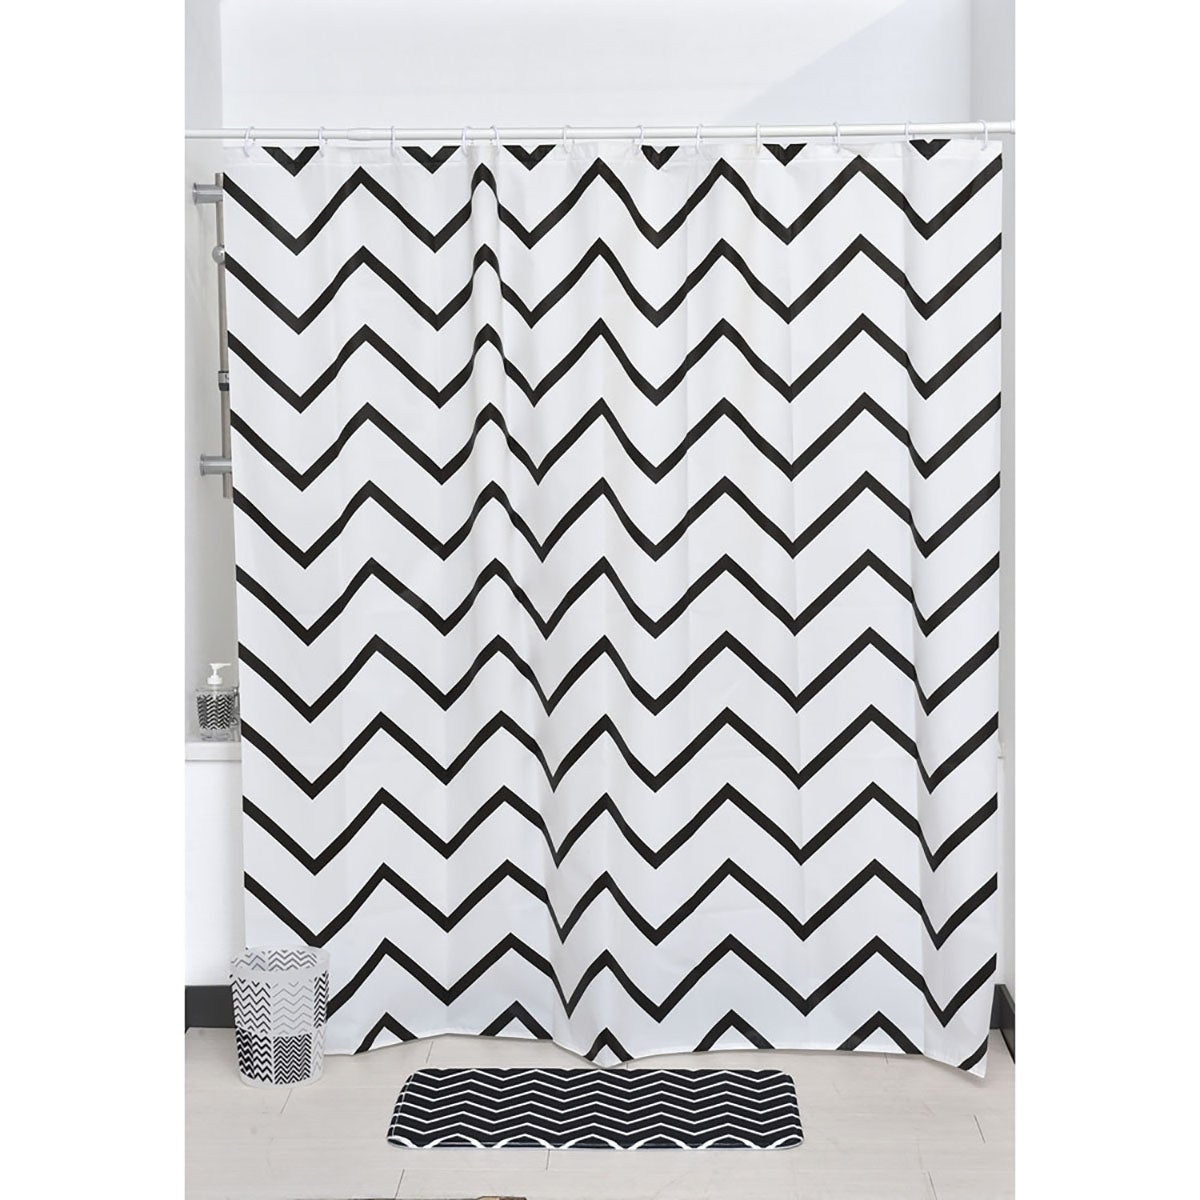 Shop Evideco Zigzag Collection Printed Peva Liner Shower Curtain